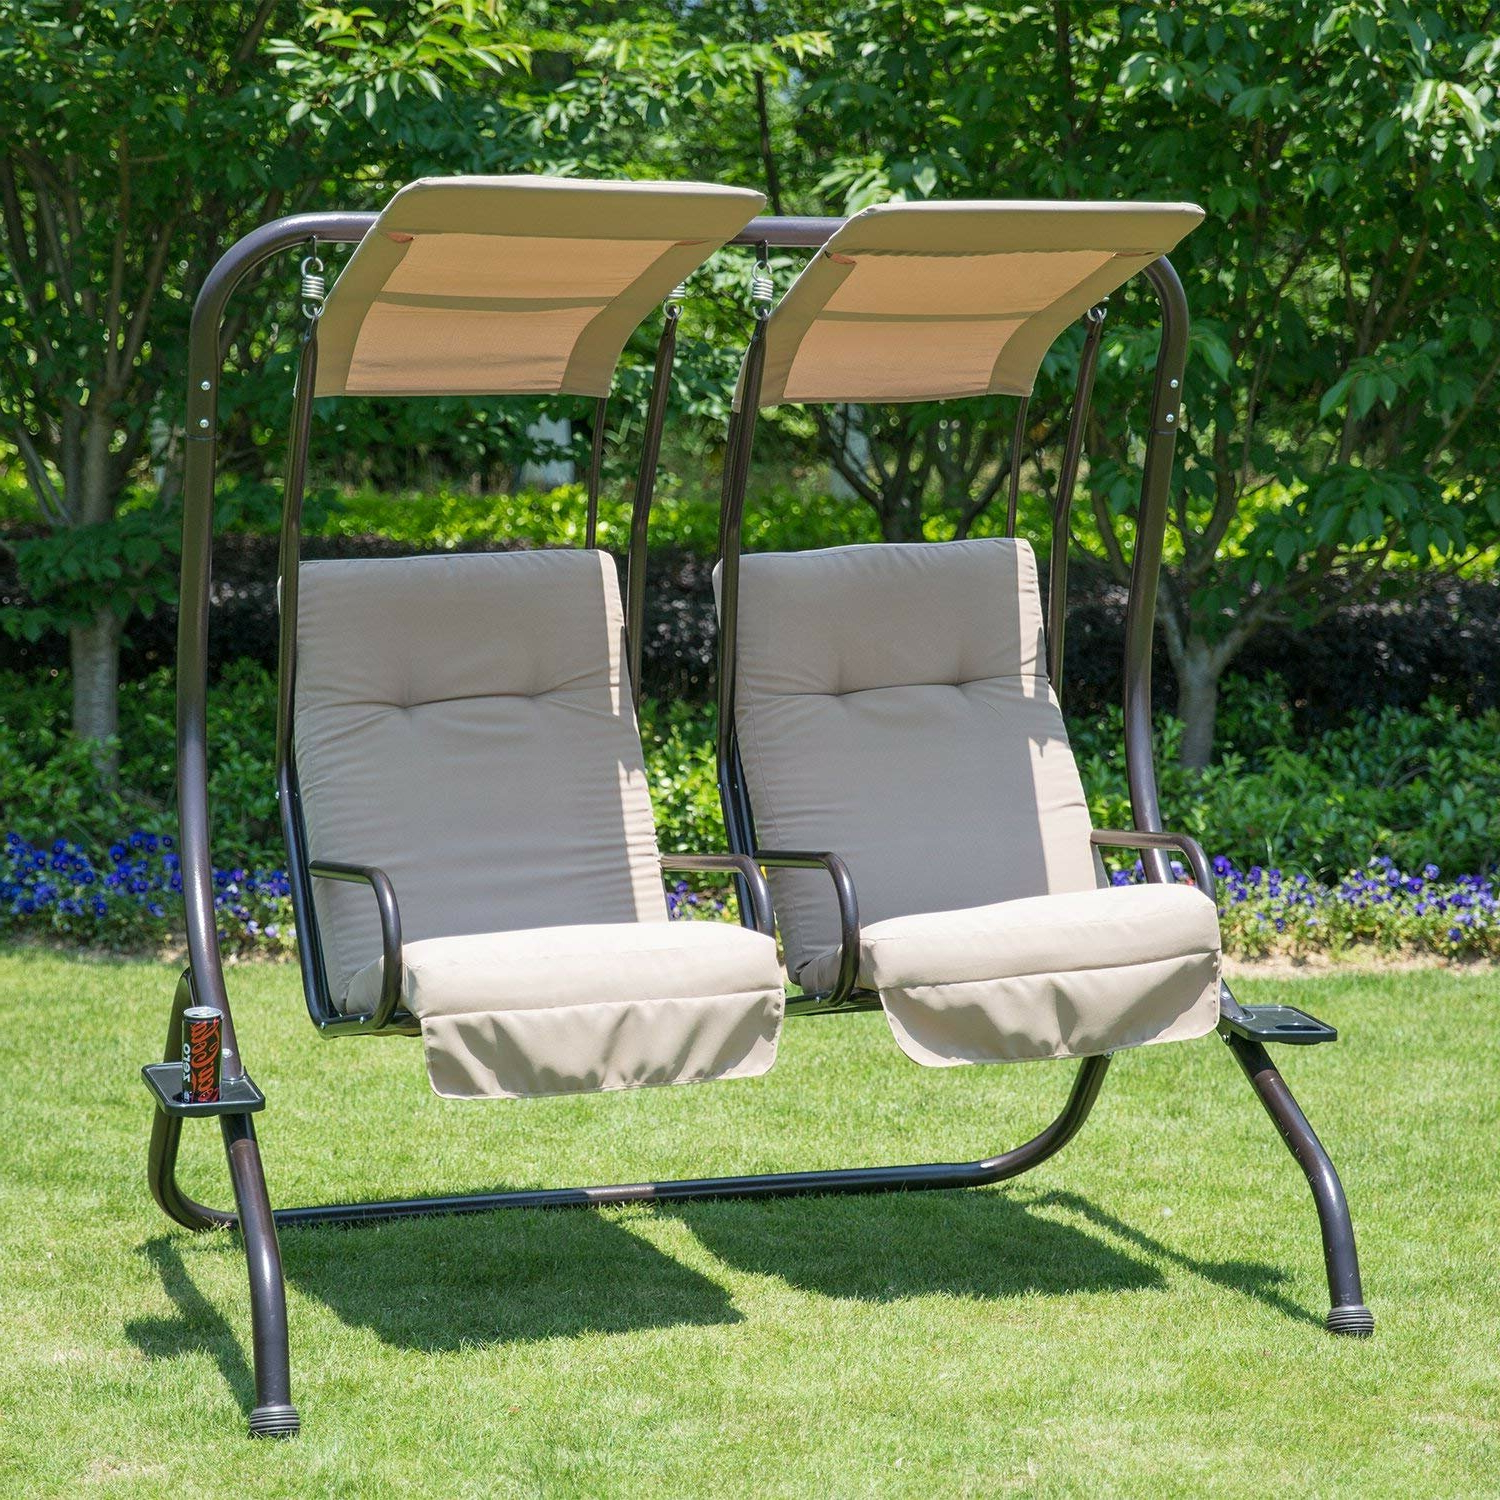 Newest Freeport Park Morrilton Porch Swing With Stand & Reviews With 2 Person Adjustable Tilt Canopy Patio Loveseat Porch Swings (Gallery 18 of 30)